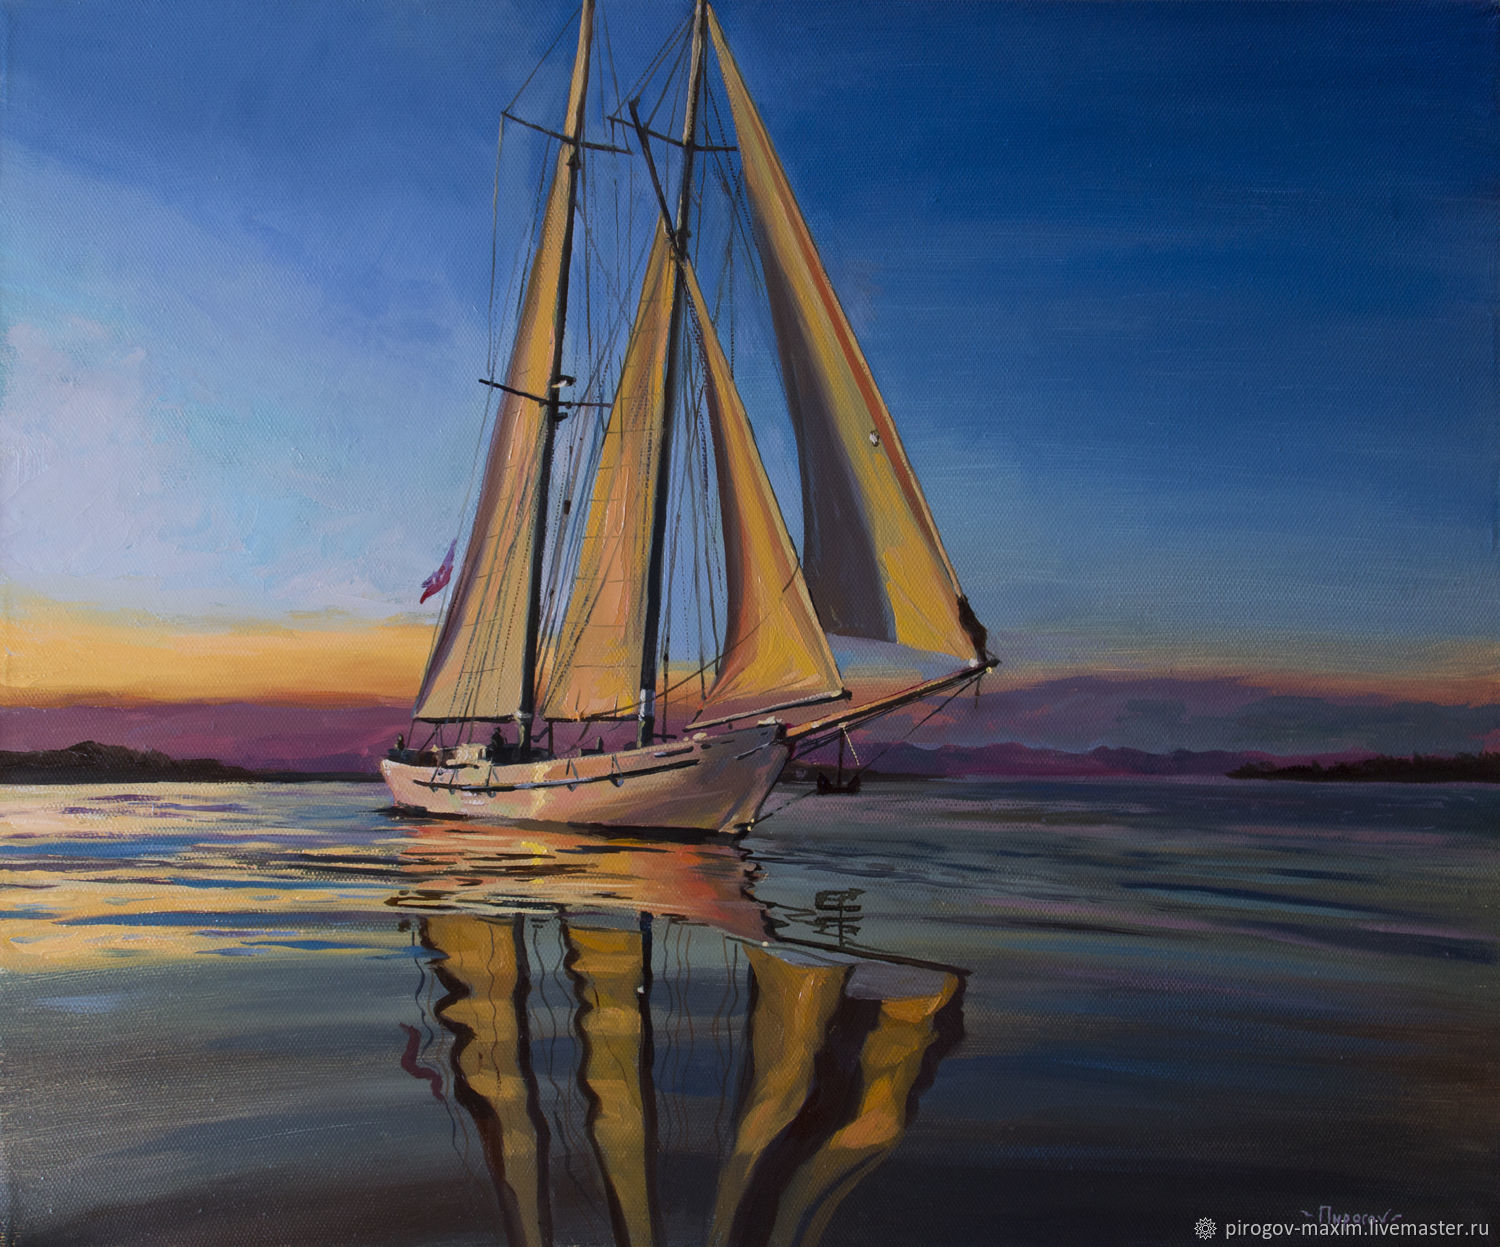 `Sailboat at sunset` - a picture I executed with oil paints on linen canvas